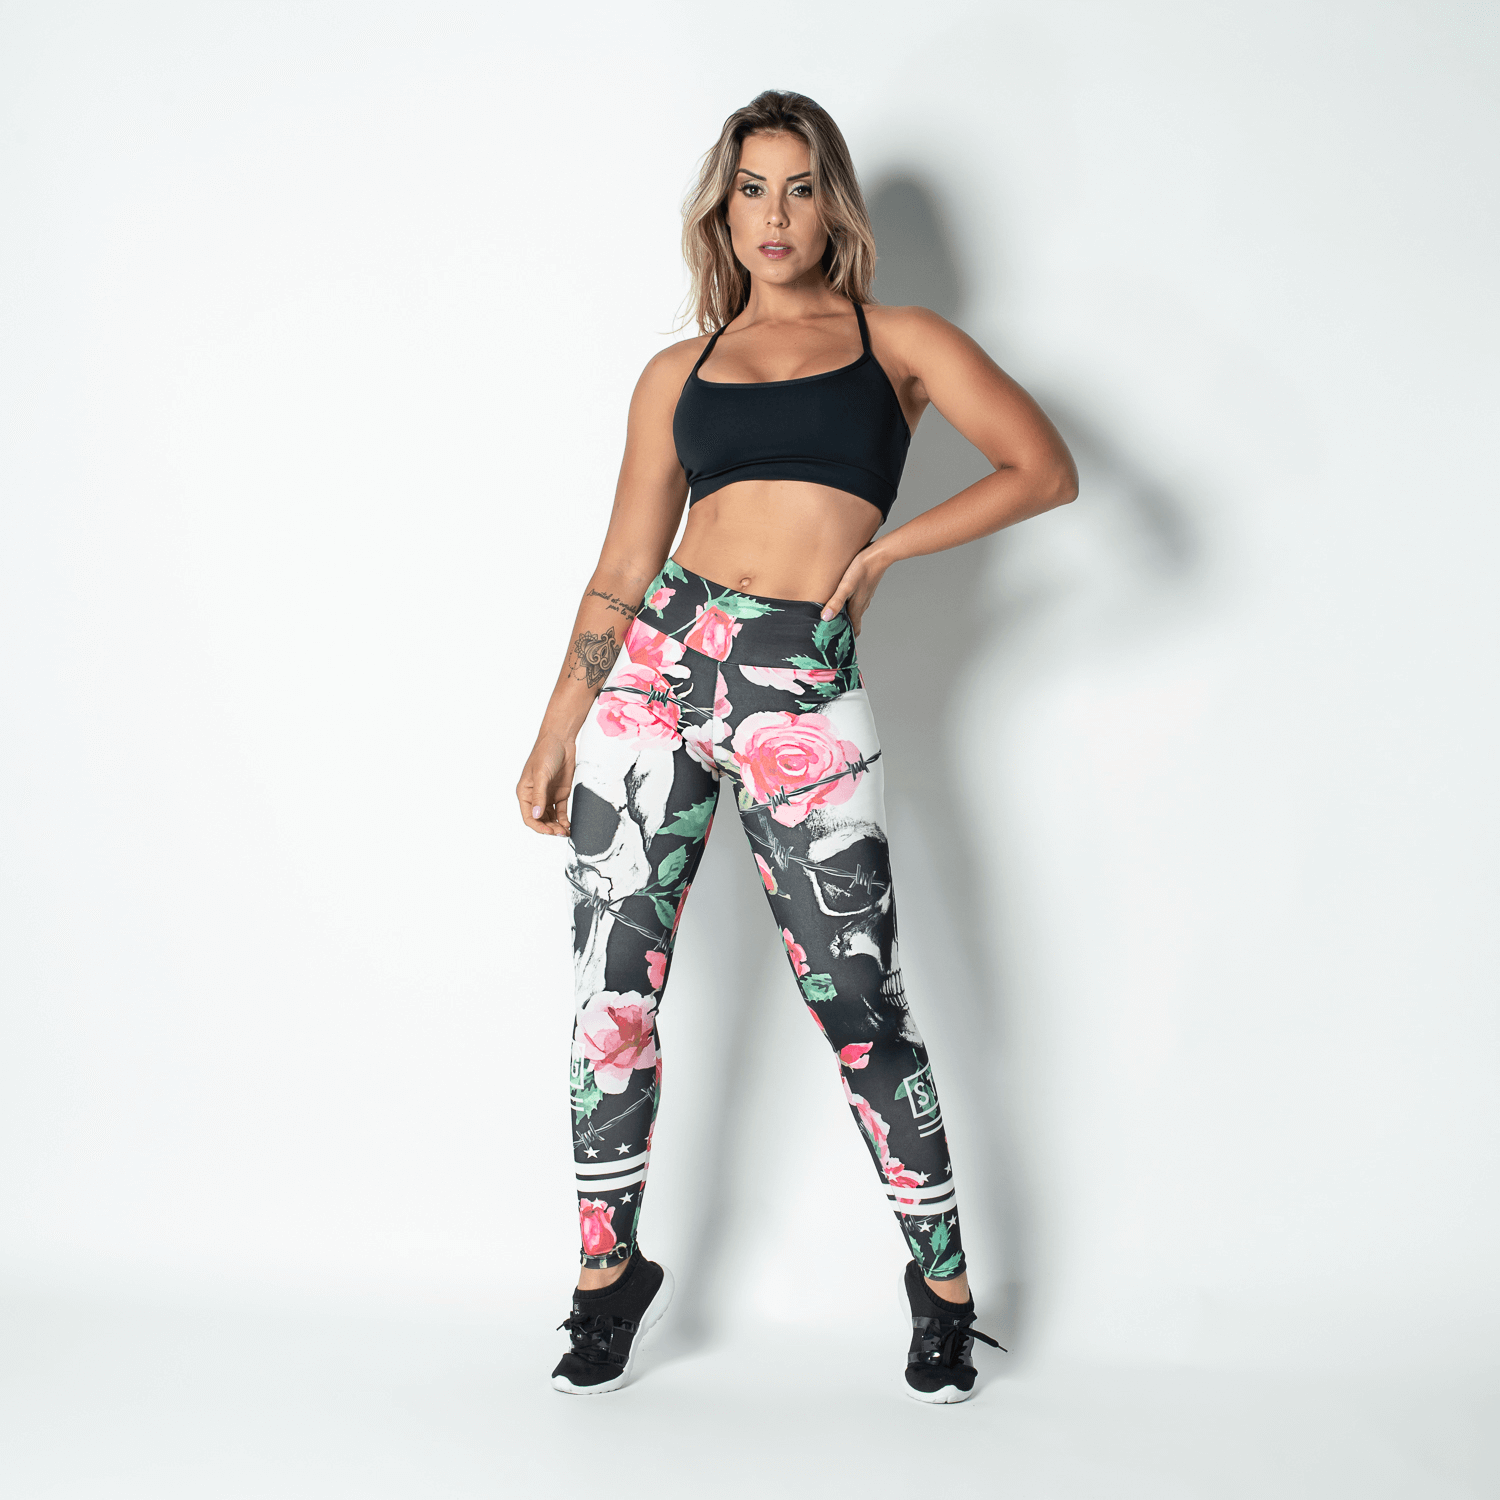 Women's Brazilian-Style Graphic Print Leggings #LG922